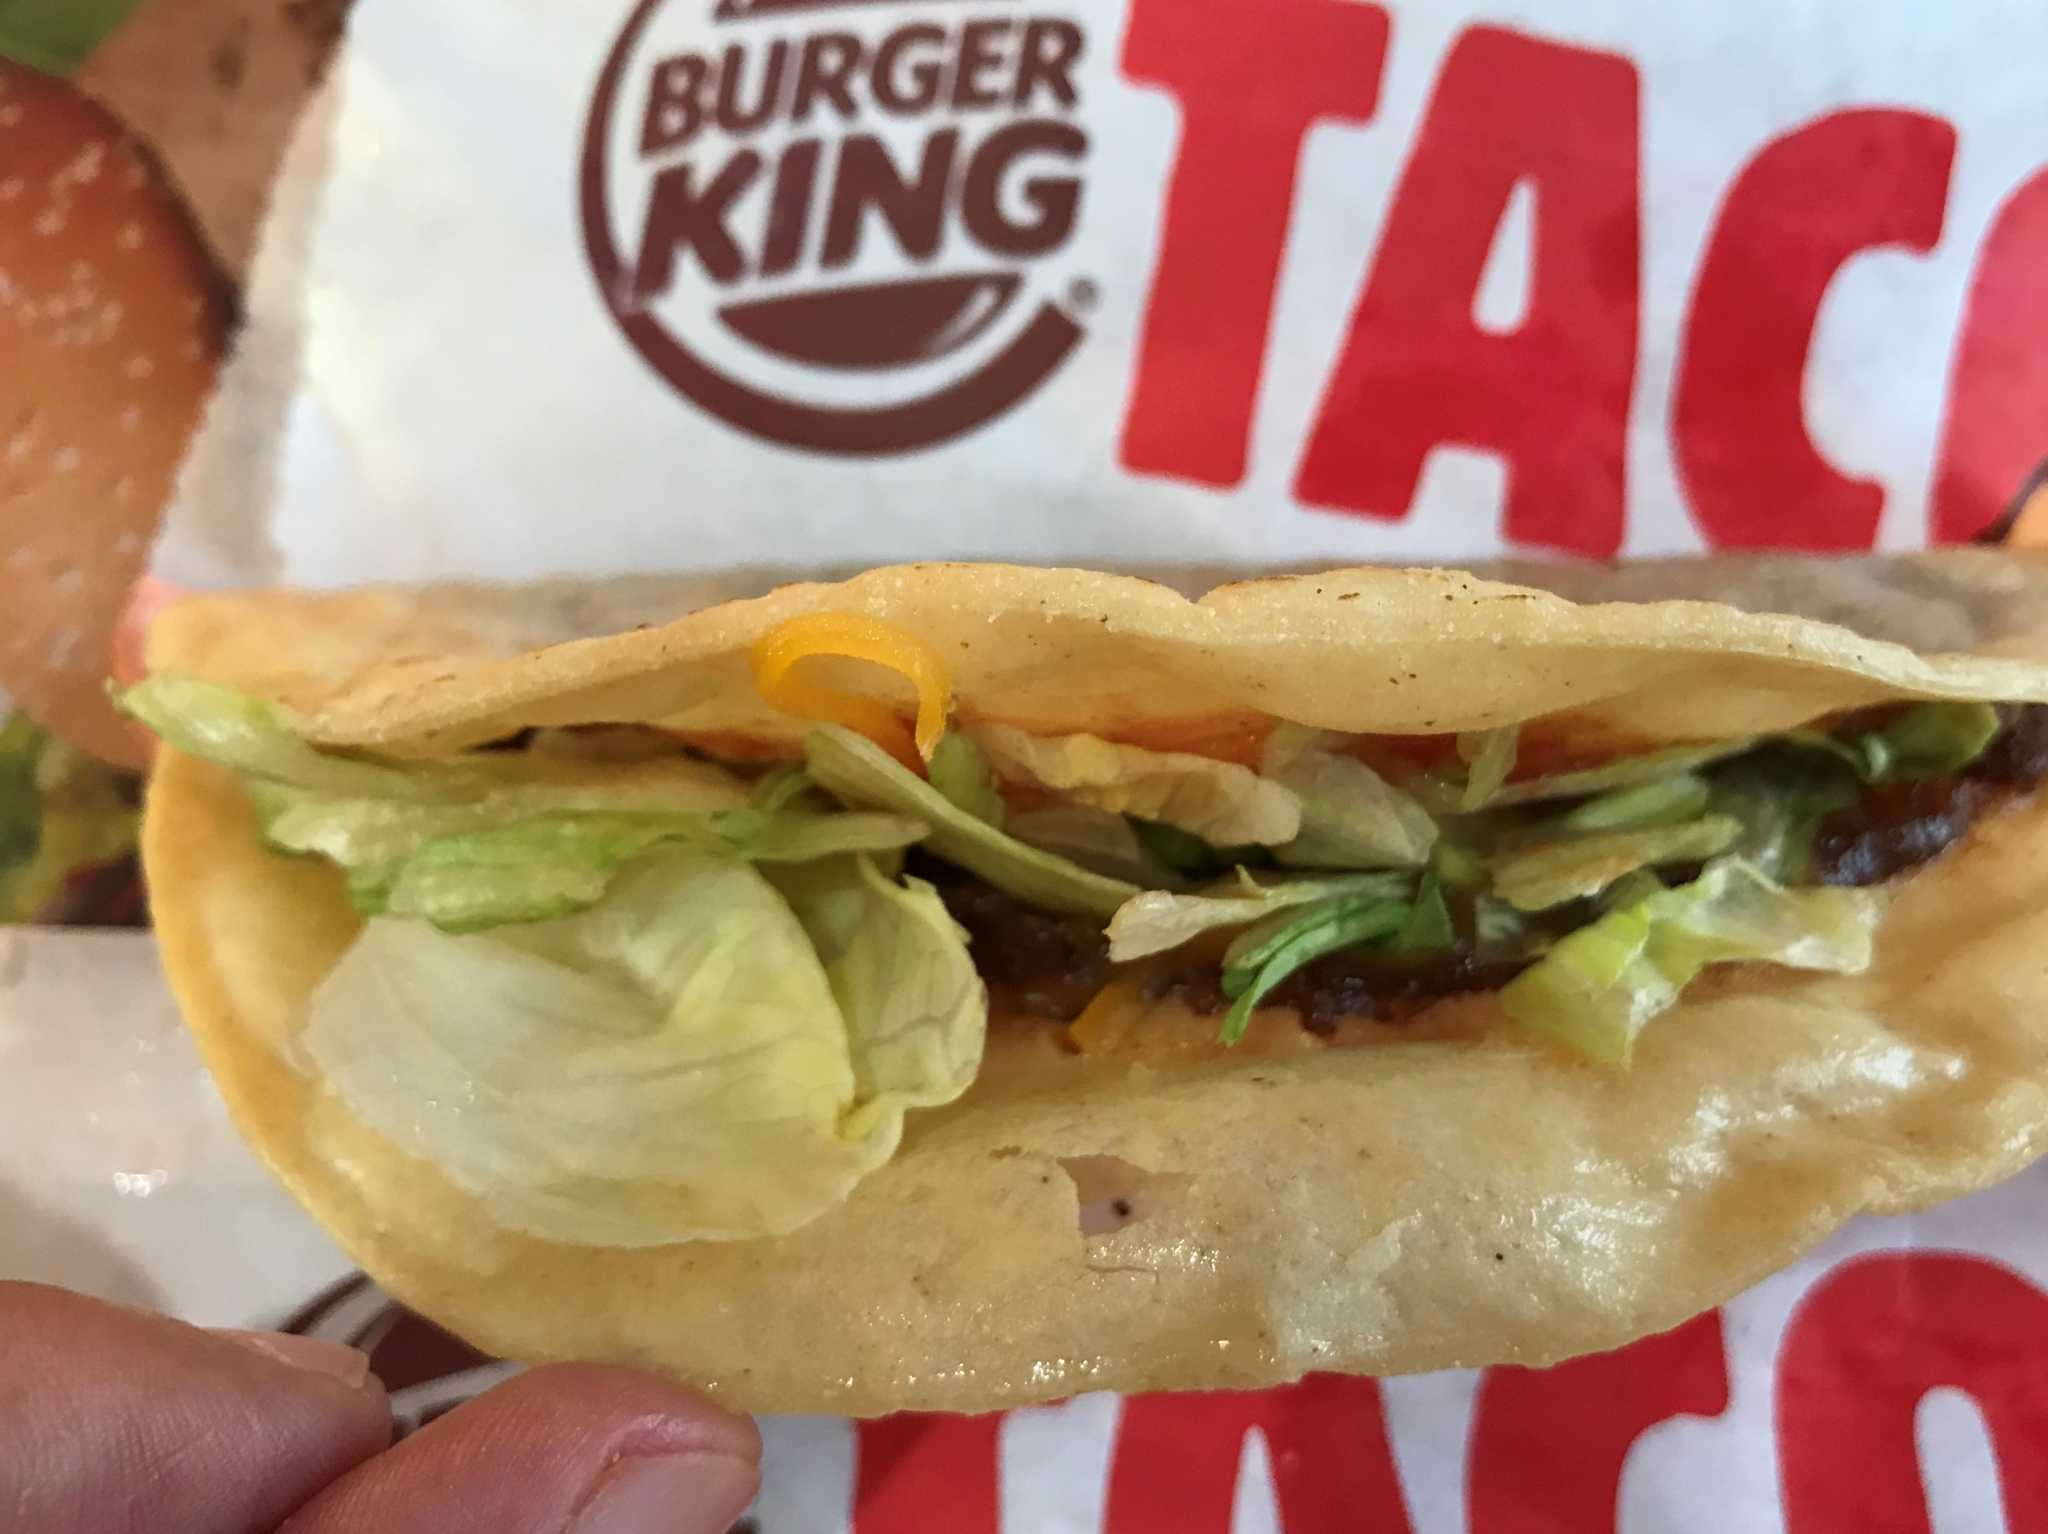 Testing Burger King's crispy taco: How it stacks up against Jack in the Box and Taco Bell